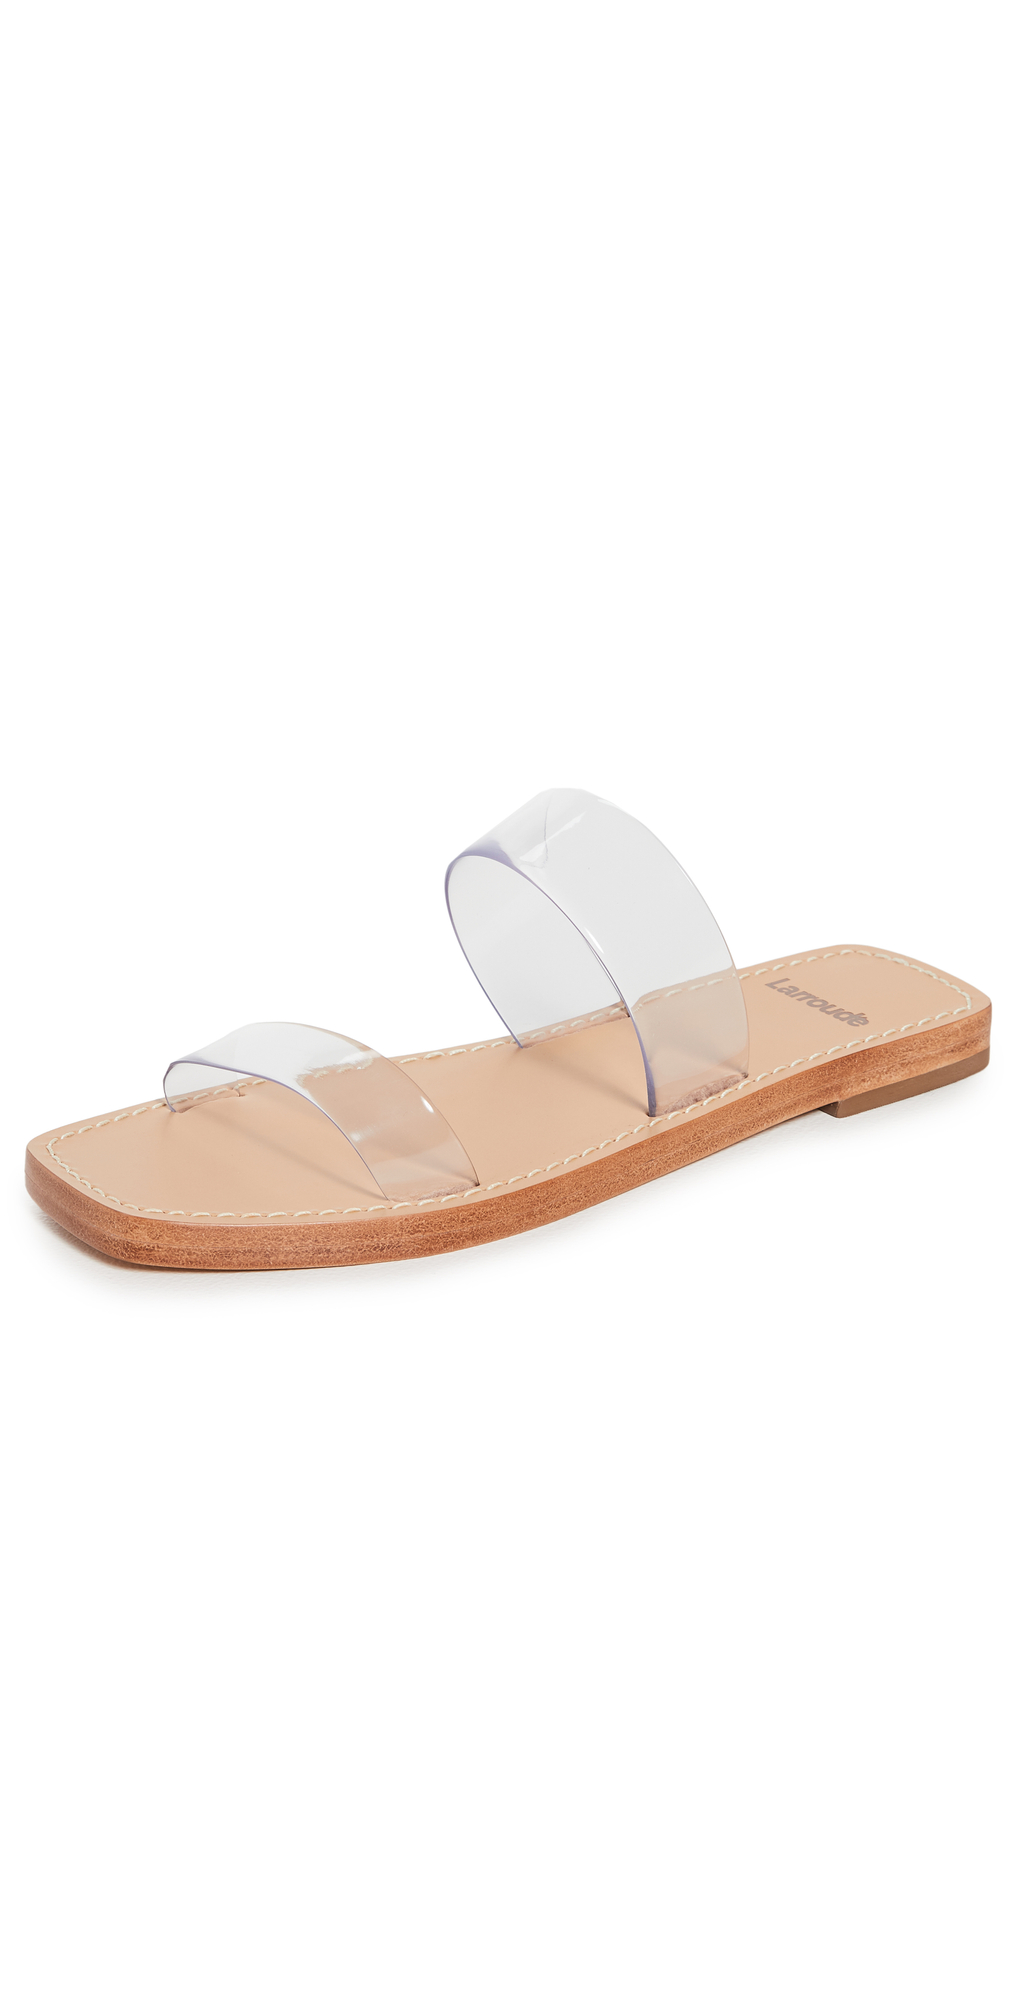 The Gabe Sandals